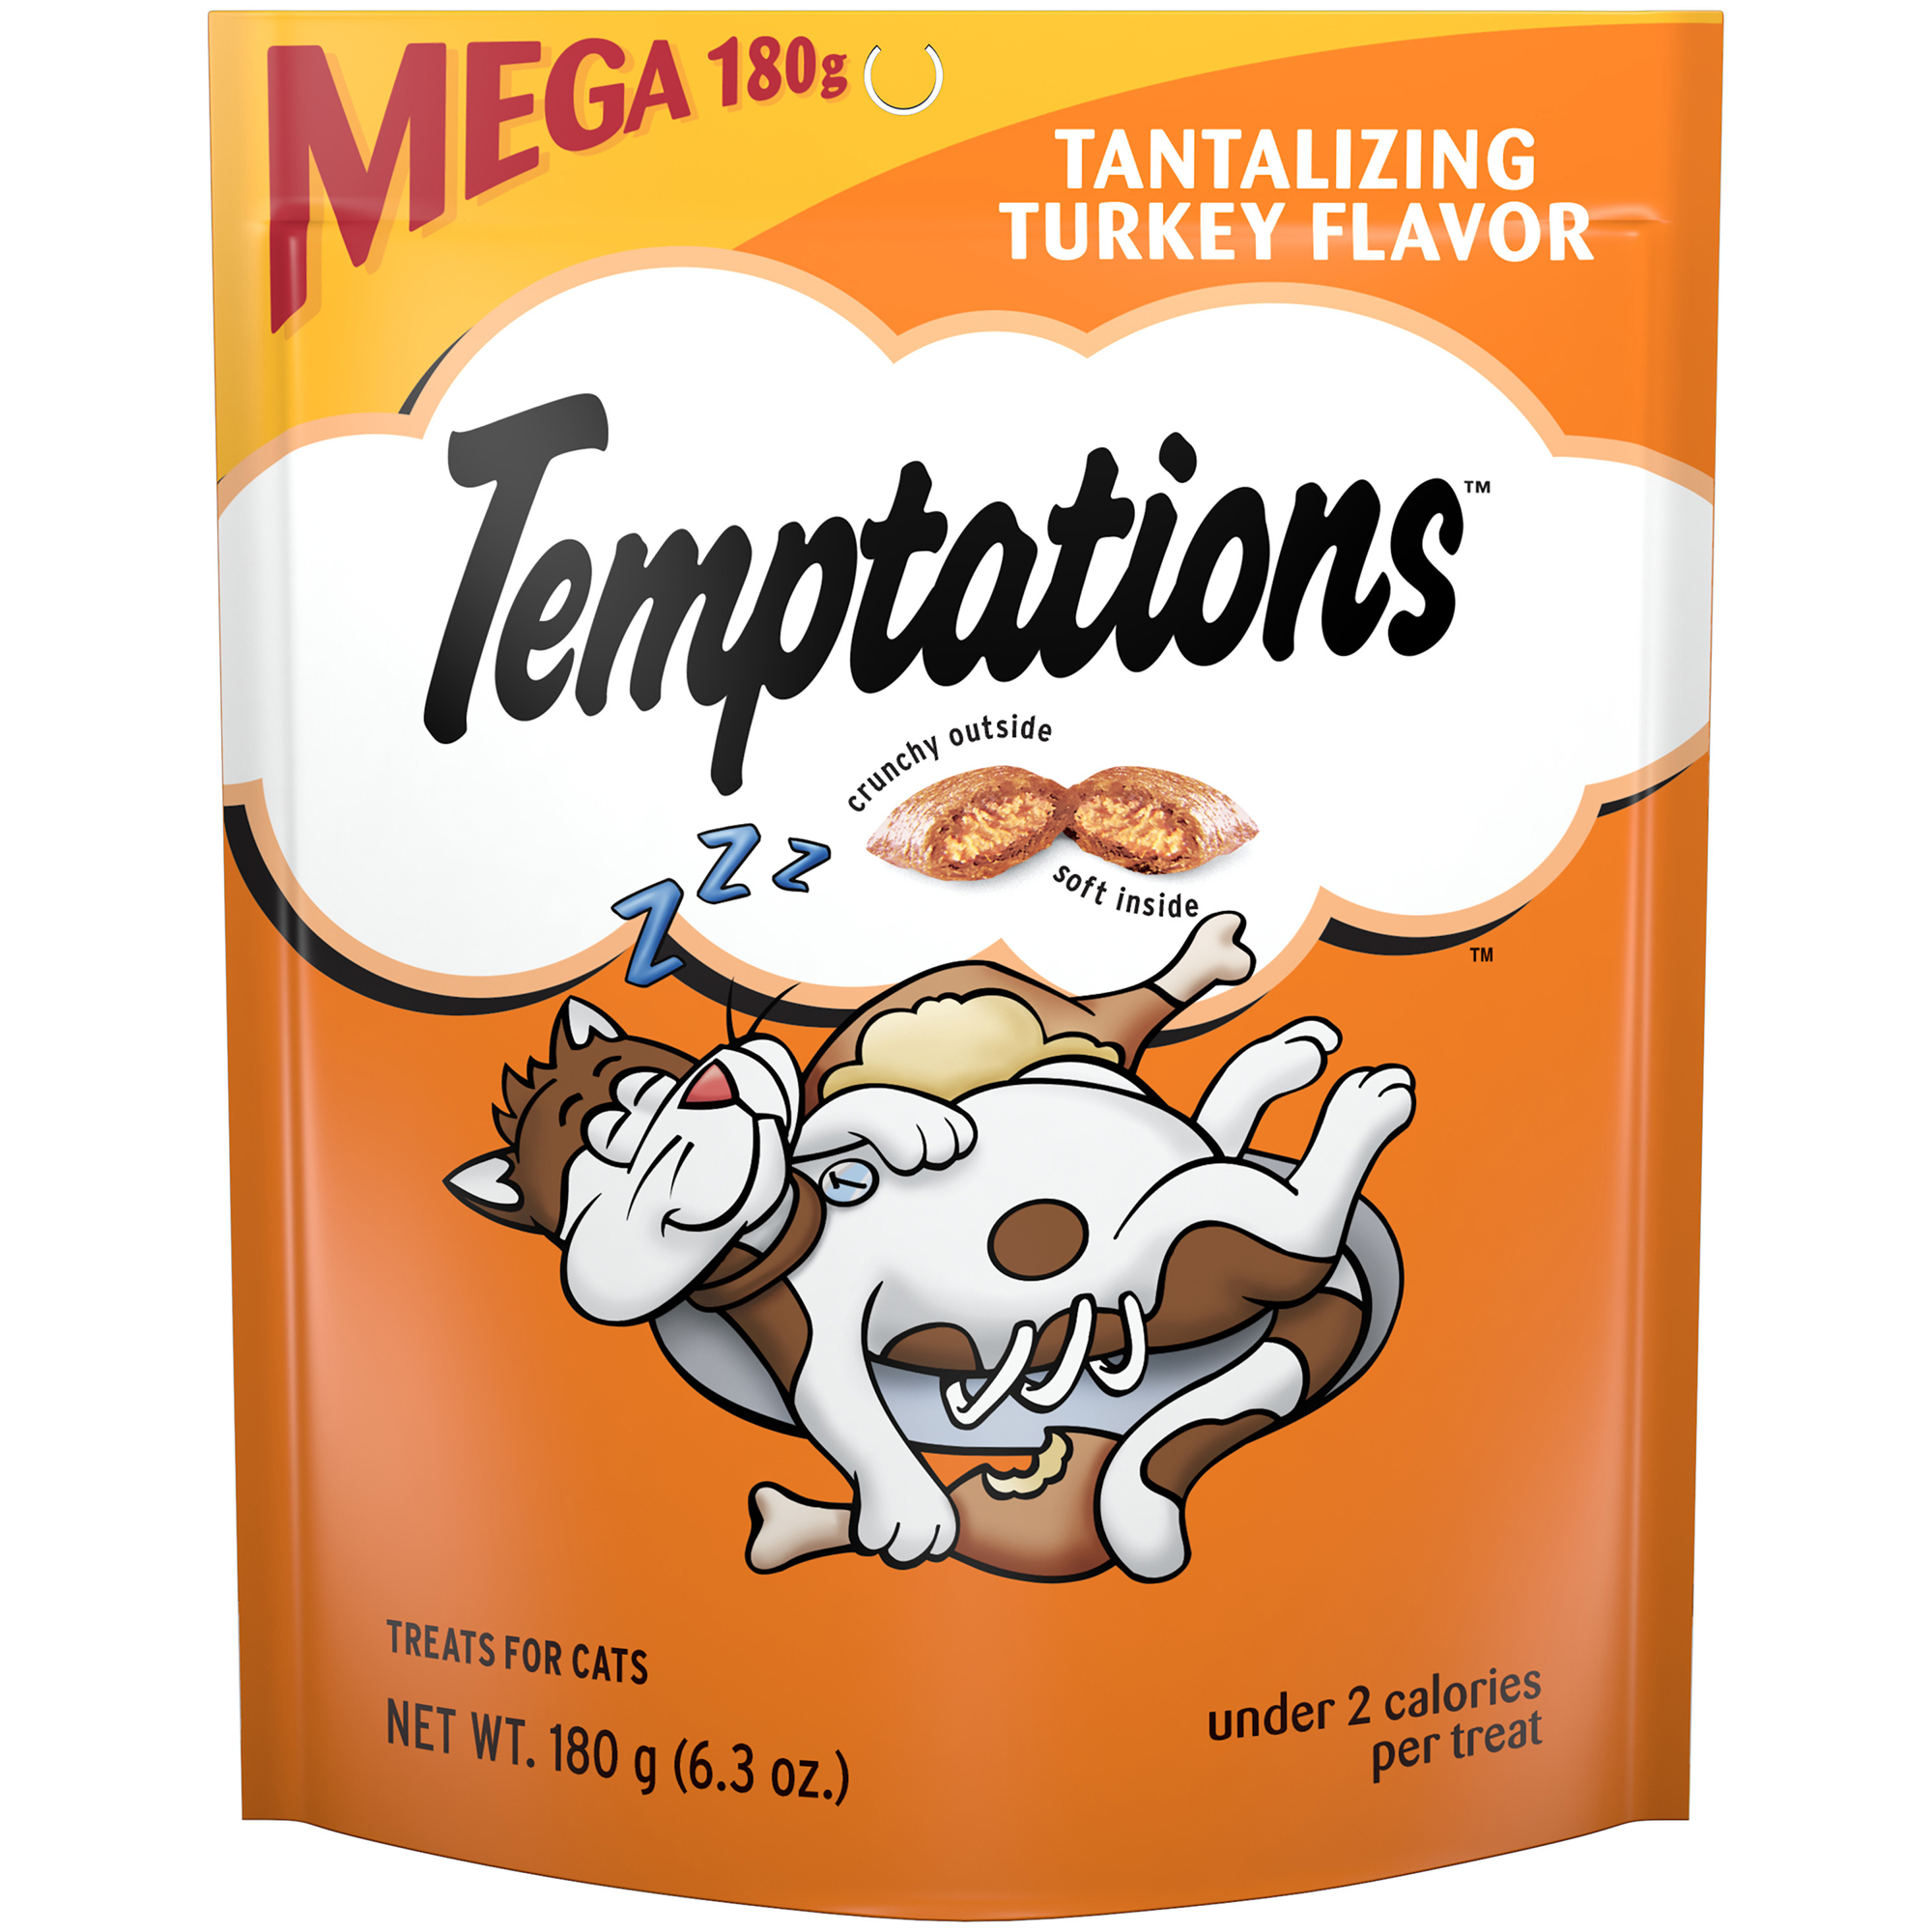 TEMPTATIONS Classic Cat Treats Tantalizing Turkey Flavor, 6.3 oz. Pouch